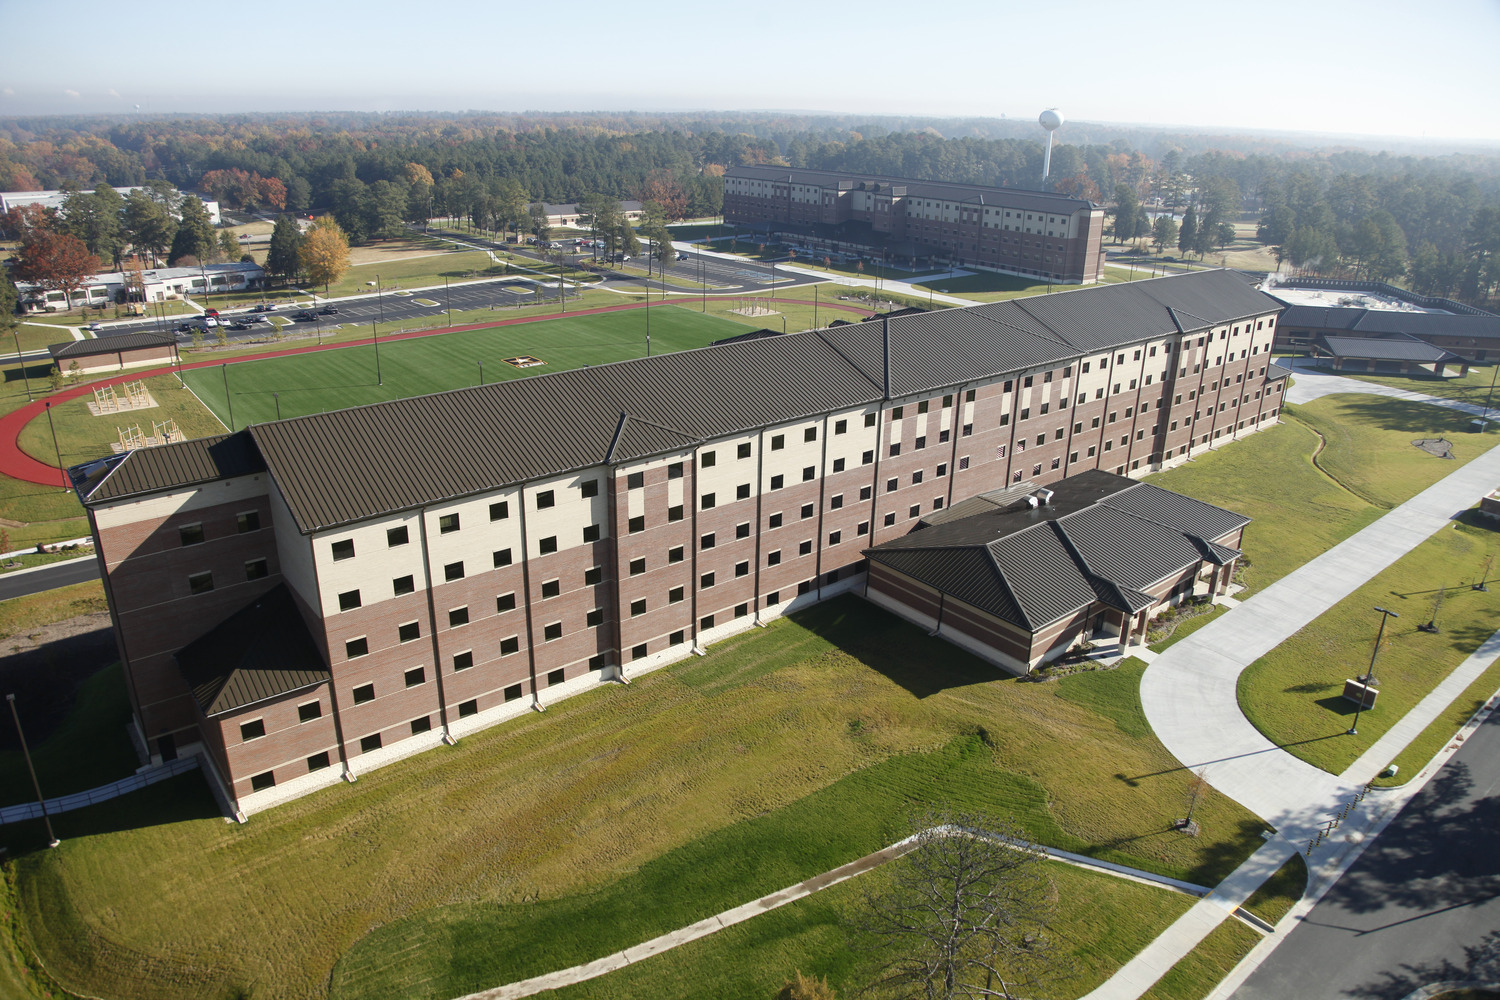 CBG builds Fort Lee AIT Barracks, a 600-Unit Advanced Individual Training Facility and Residential Complex in Fort Lee, VA - Image #5